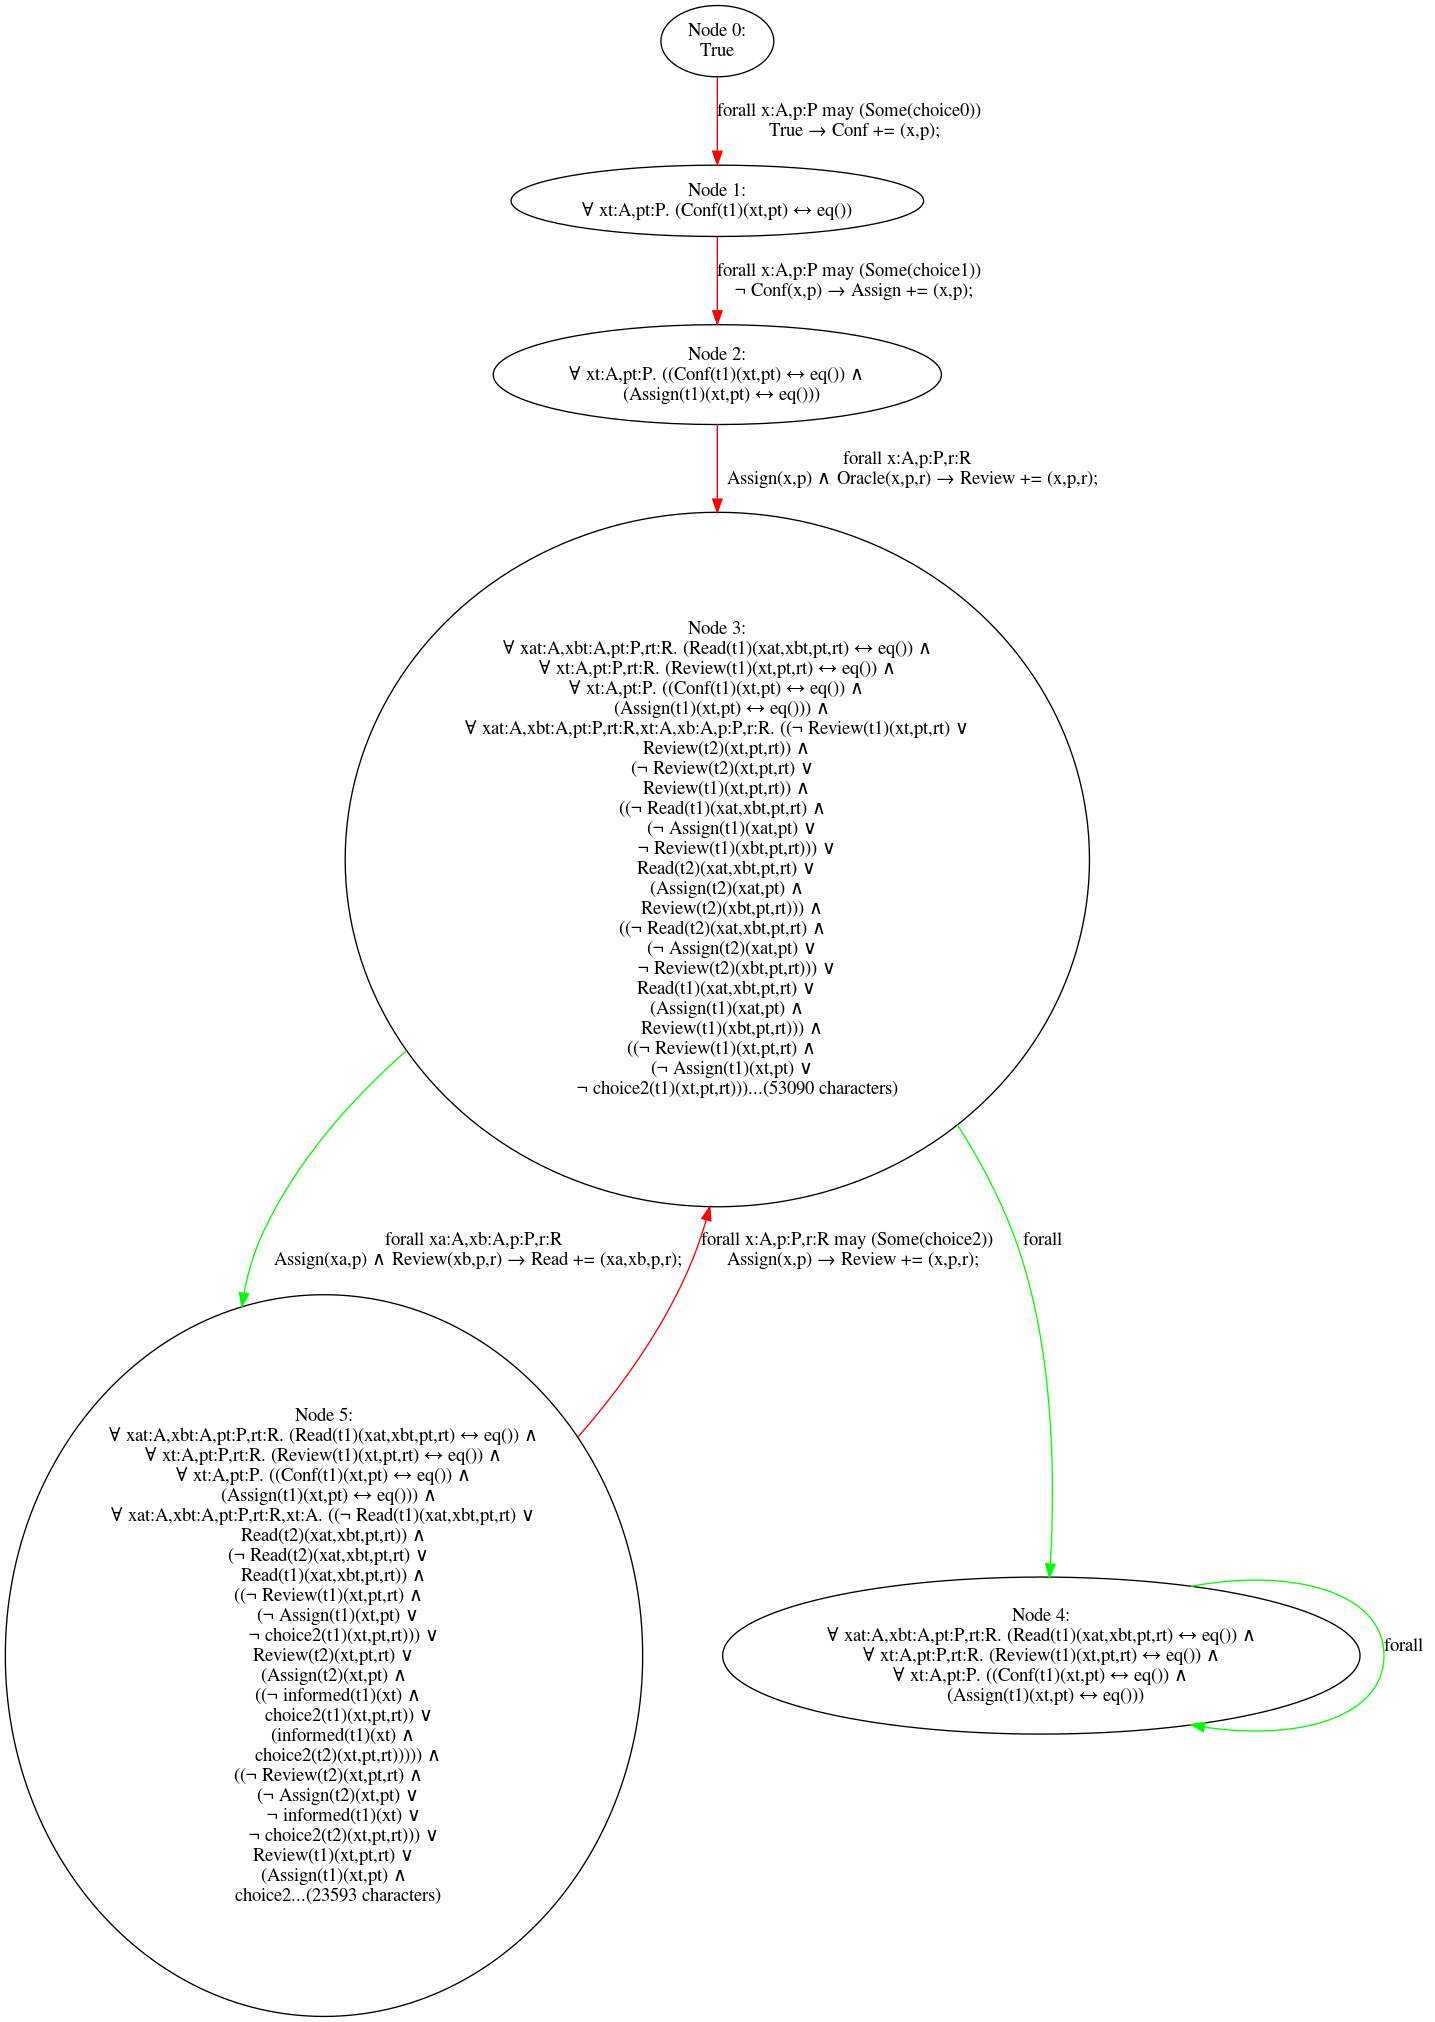 results/nonomitting/conference/conference_causal_alleq_10.png